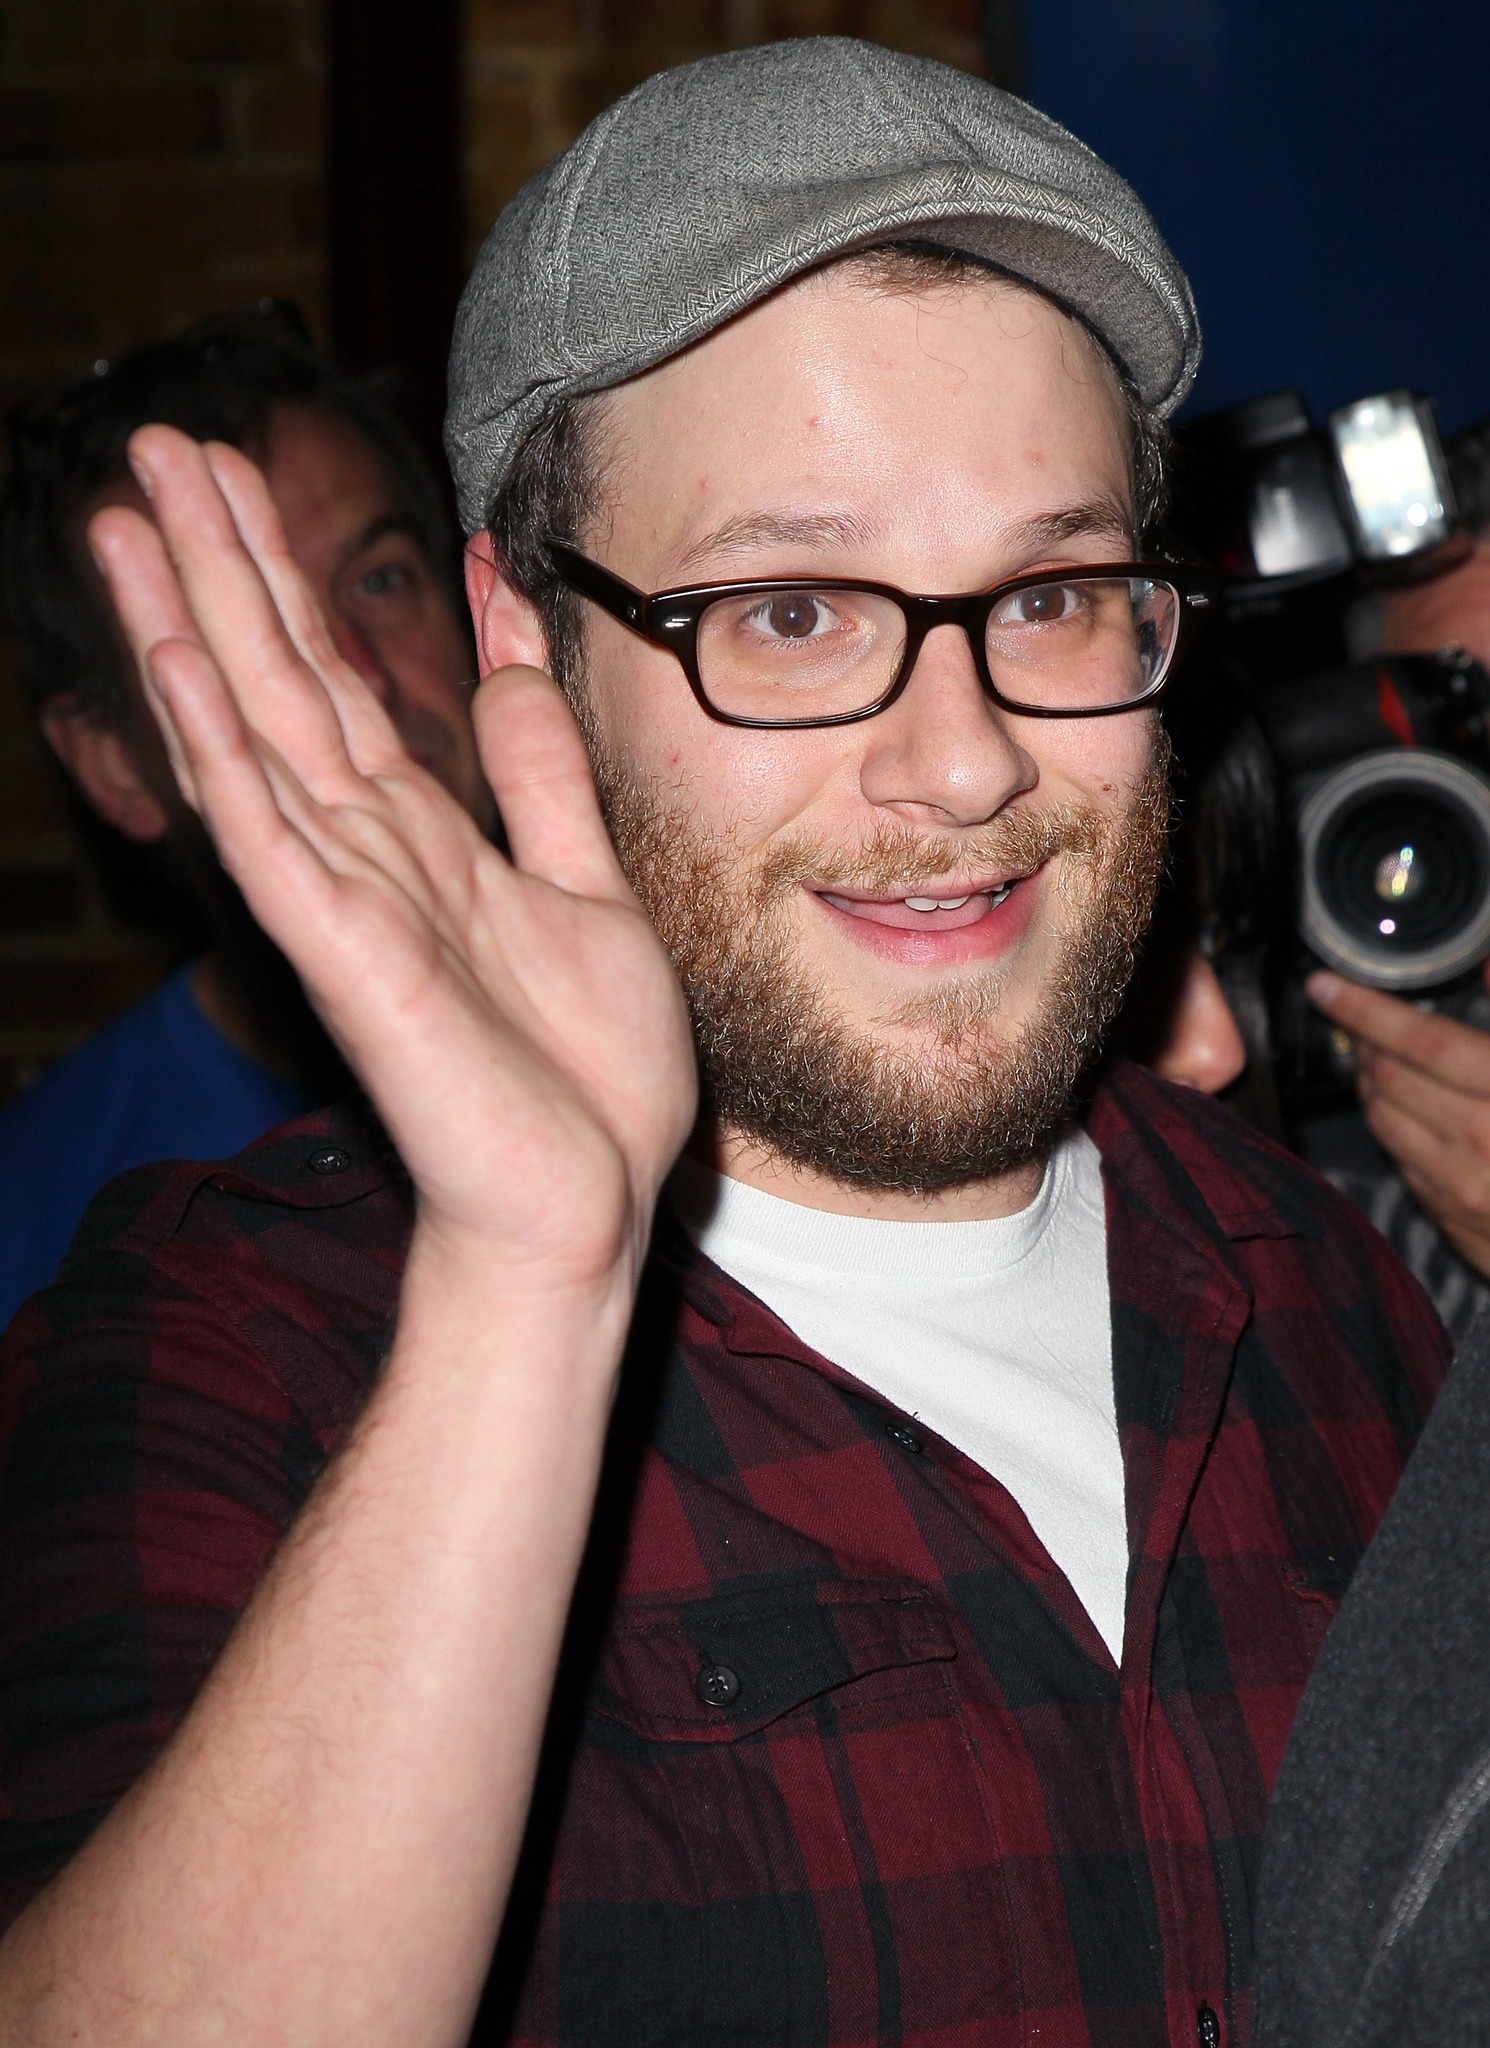 Seth Rogen at an event for Eastbound & Down (2009)